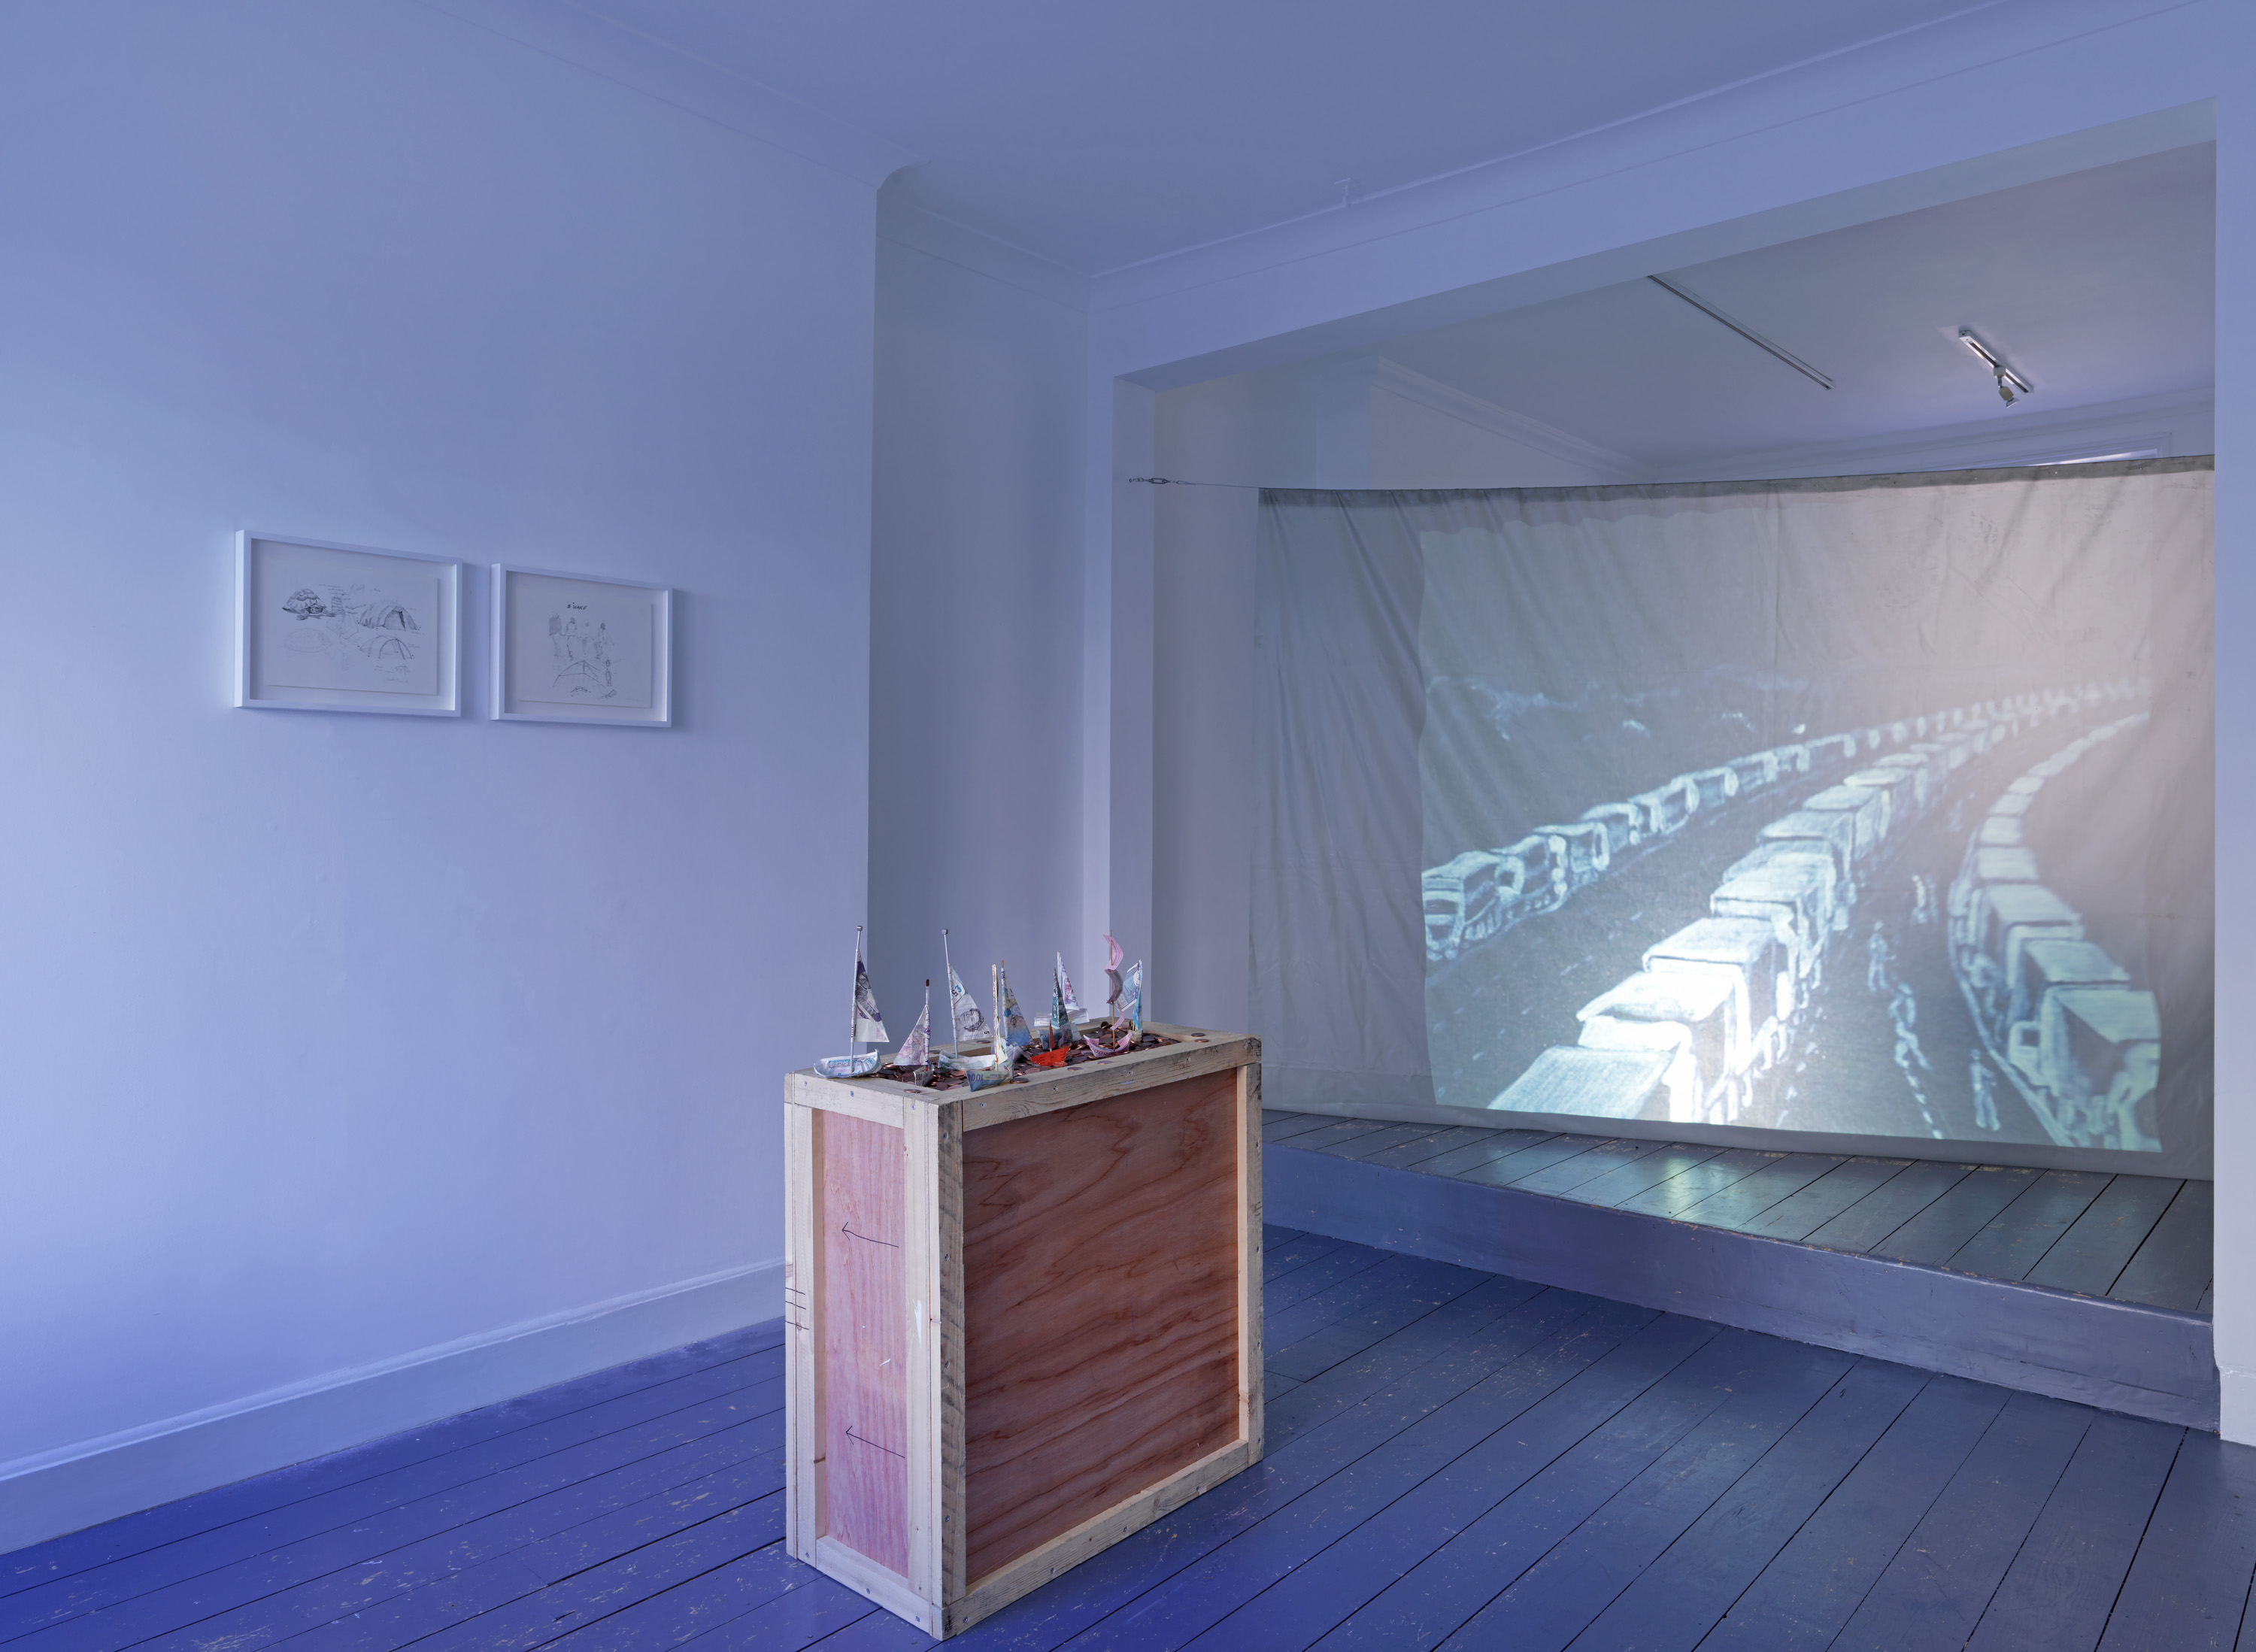 Patrick-heide-sea-is-the-limit-installationshot10